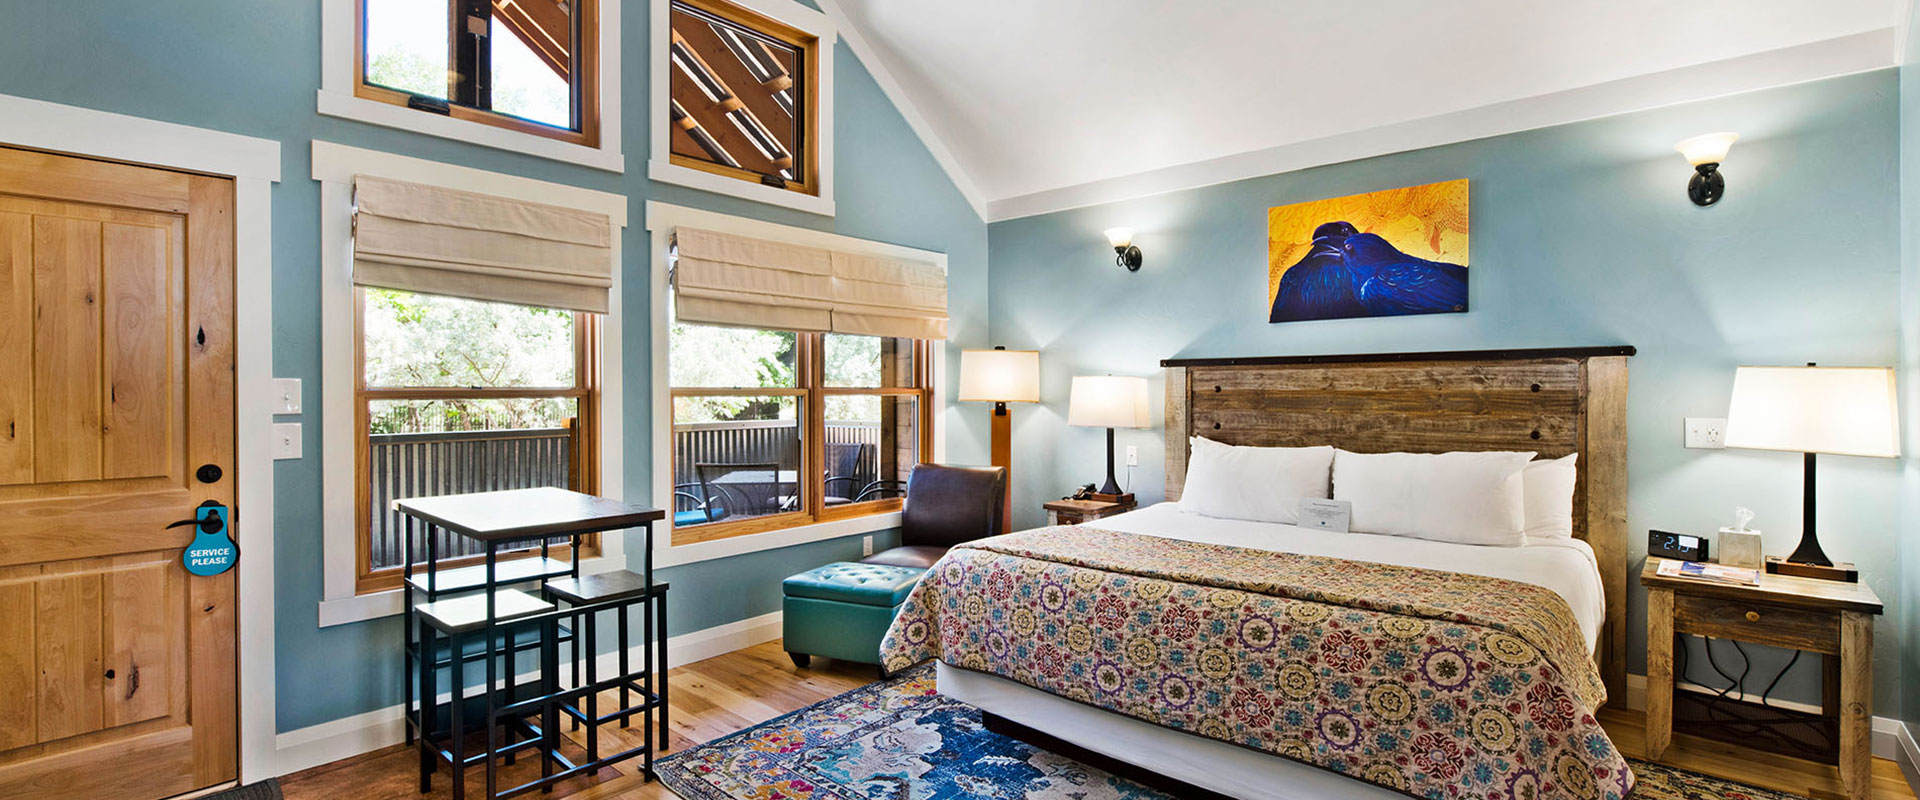 A panoramic view of the fully equipped kitchen in Unit #21 at Moab Springs Ranch with stainless steel appliances, a wrap around island that serves as a breakfast bar and flatscreen TV.